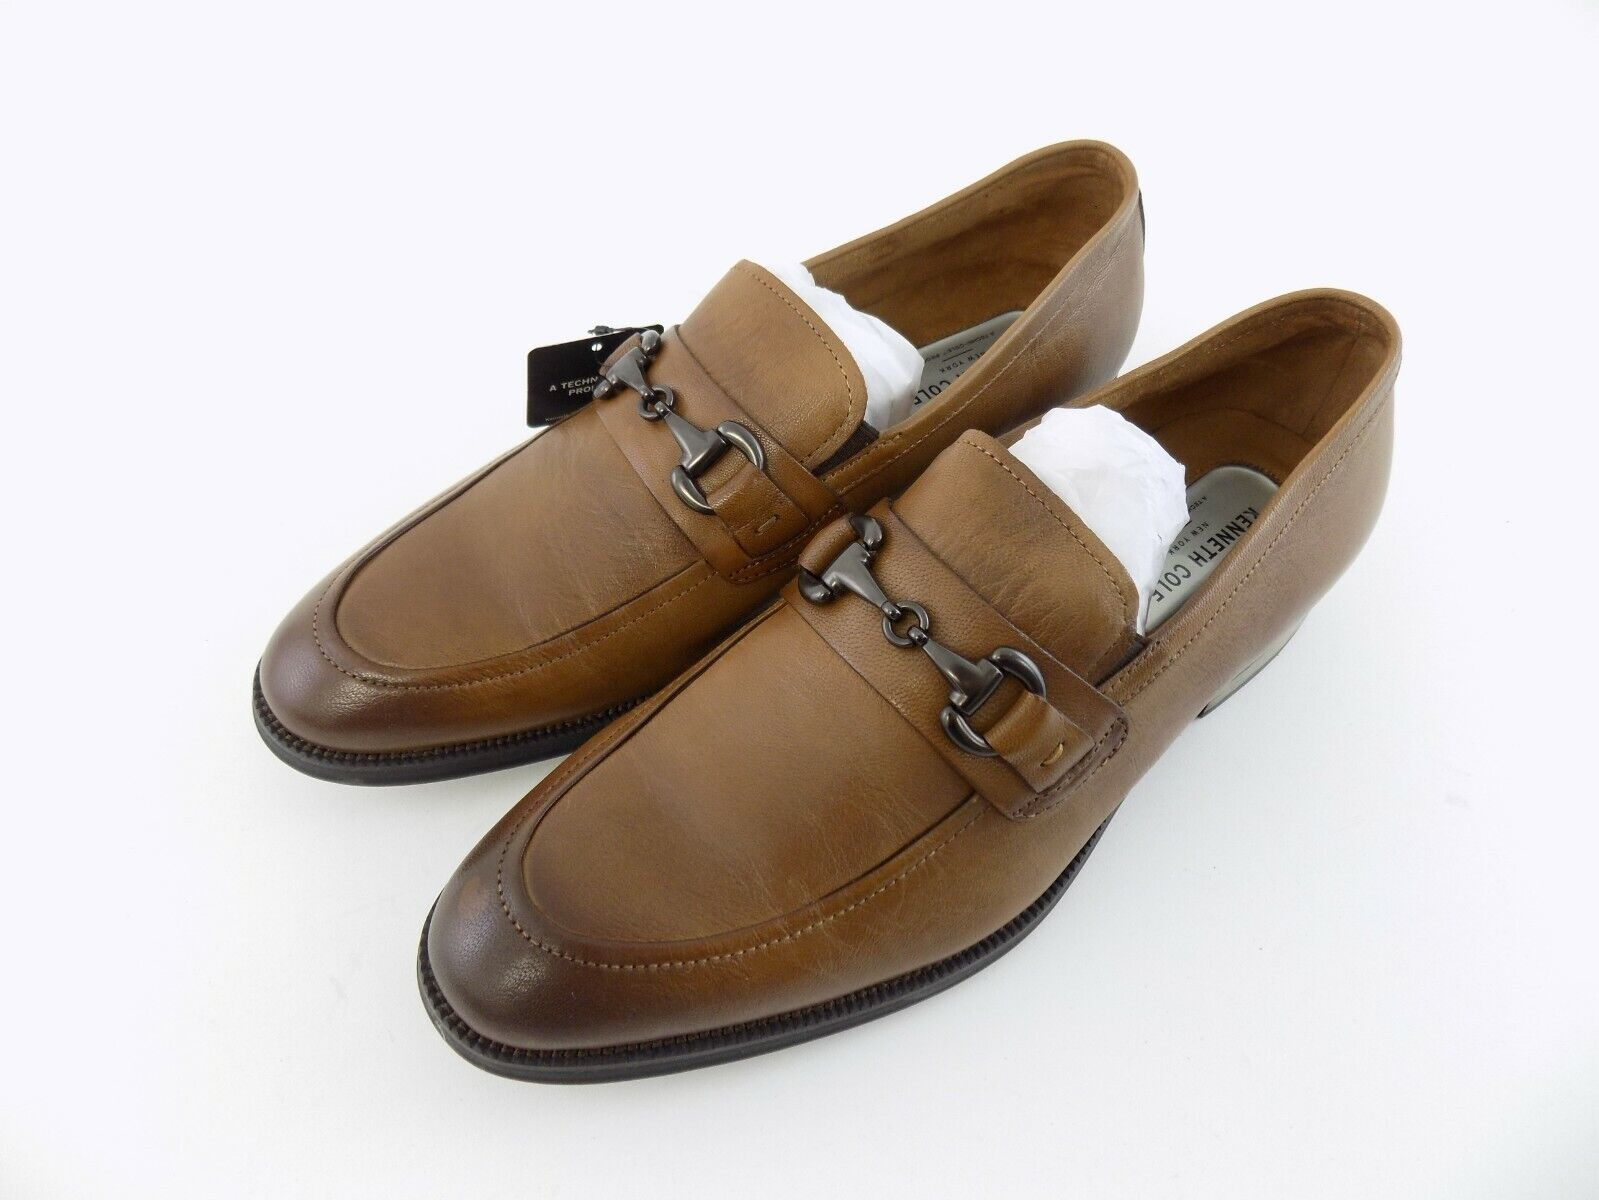 Kenneth Cole New York Brock Size 10.5M Cognac Leather Slip-On Men's Loafers